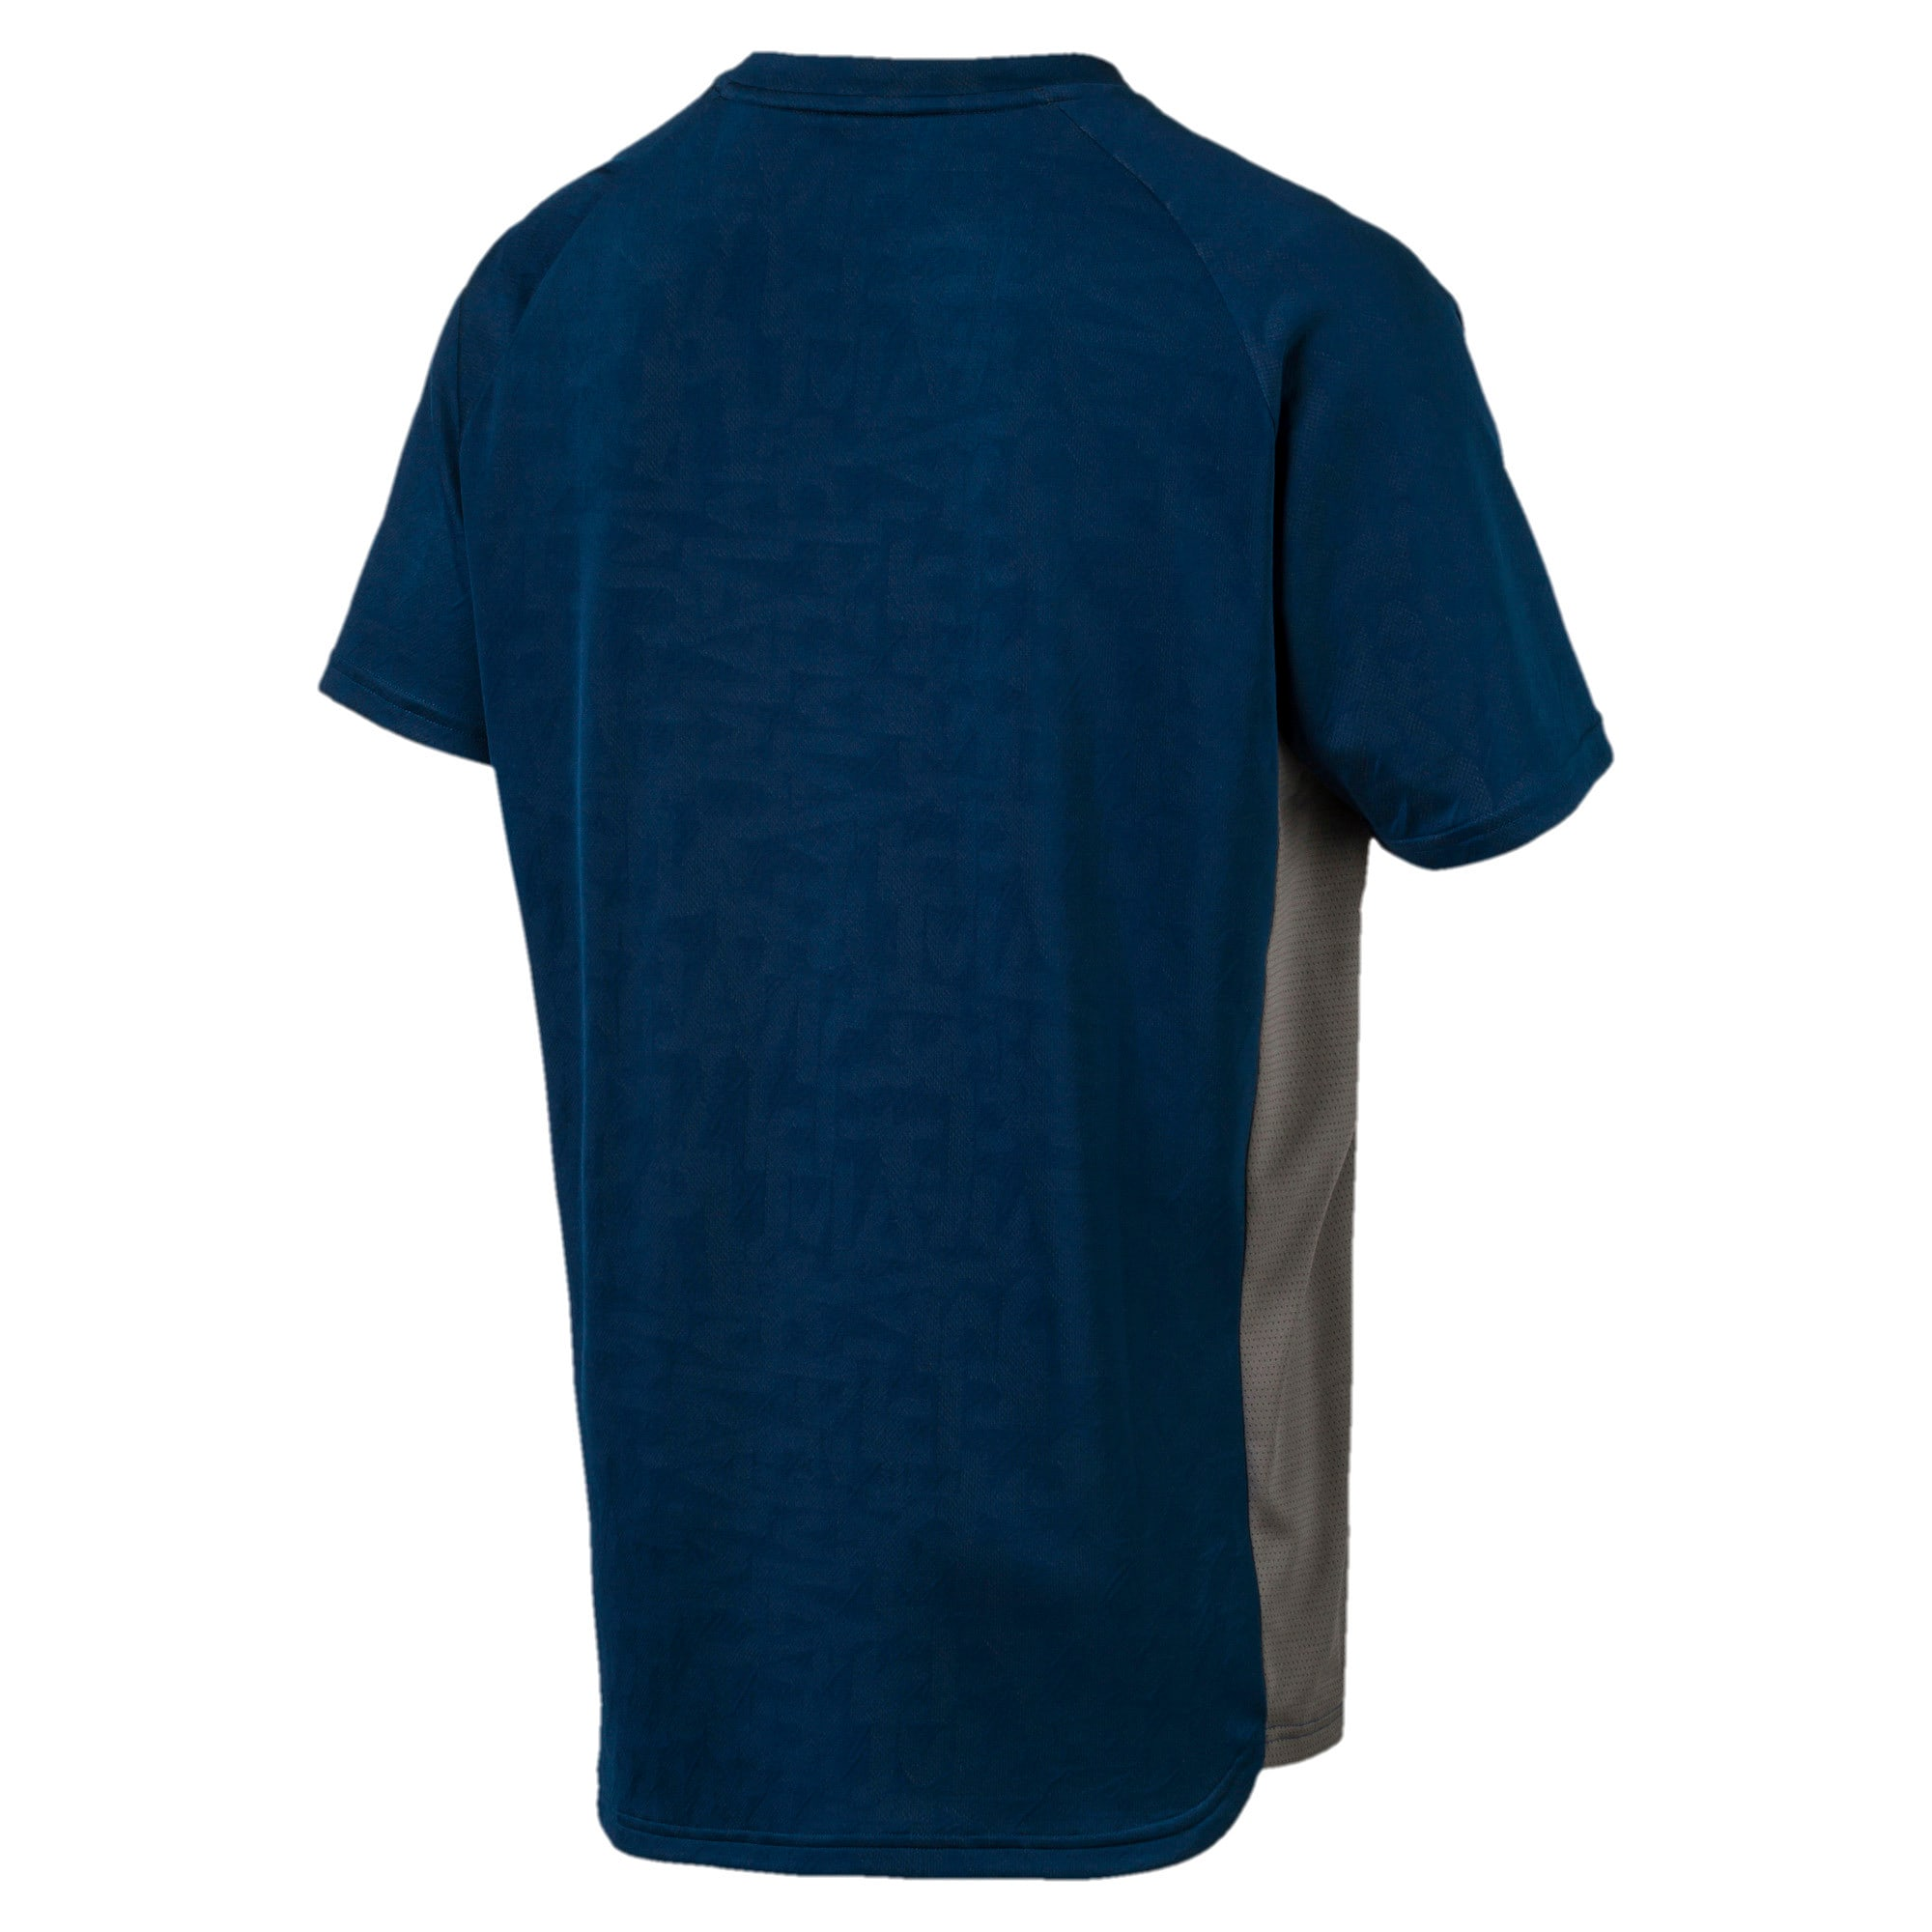 Power Vent Men's Tee, Gibraltar Sea, large